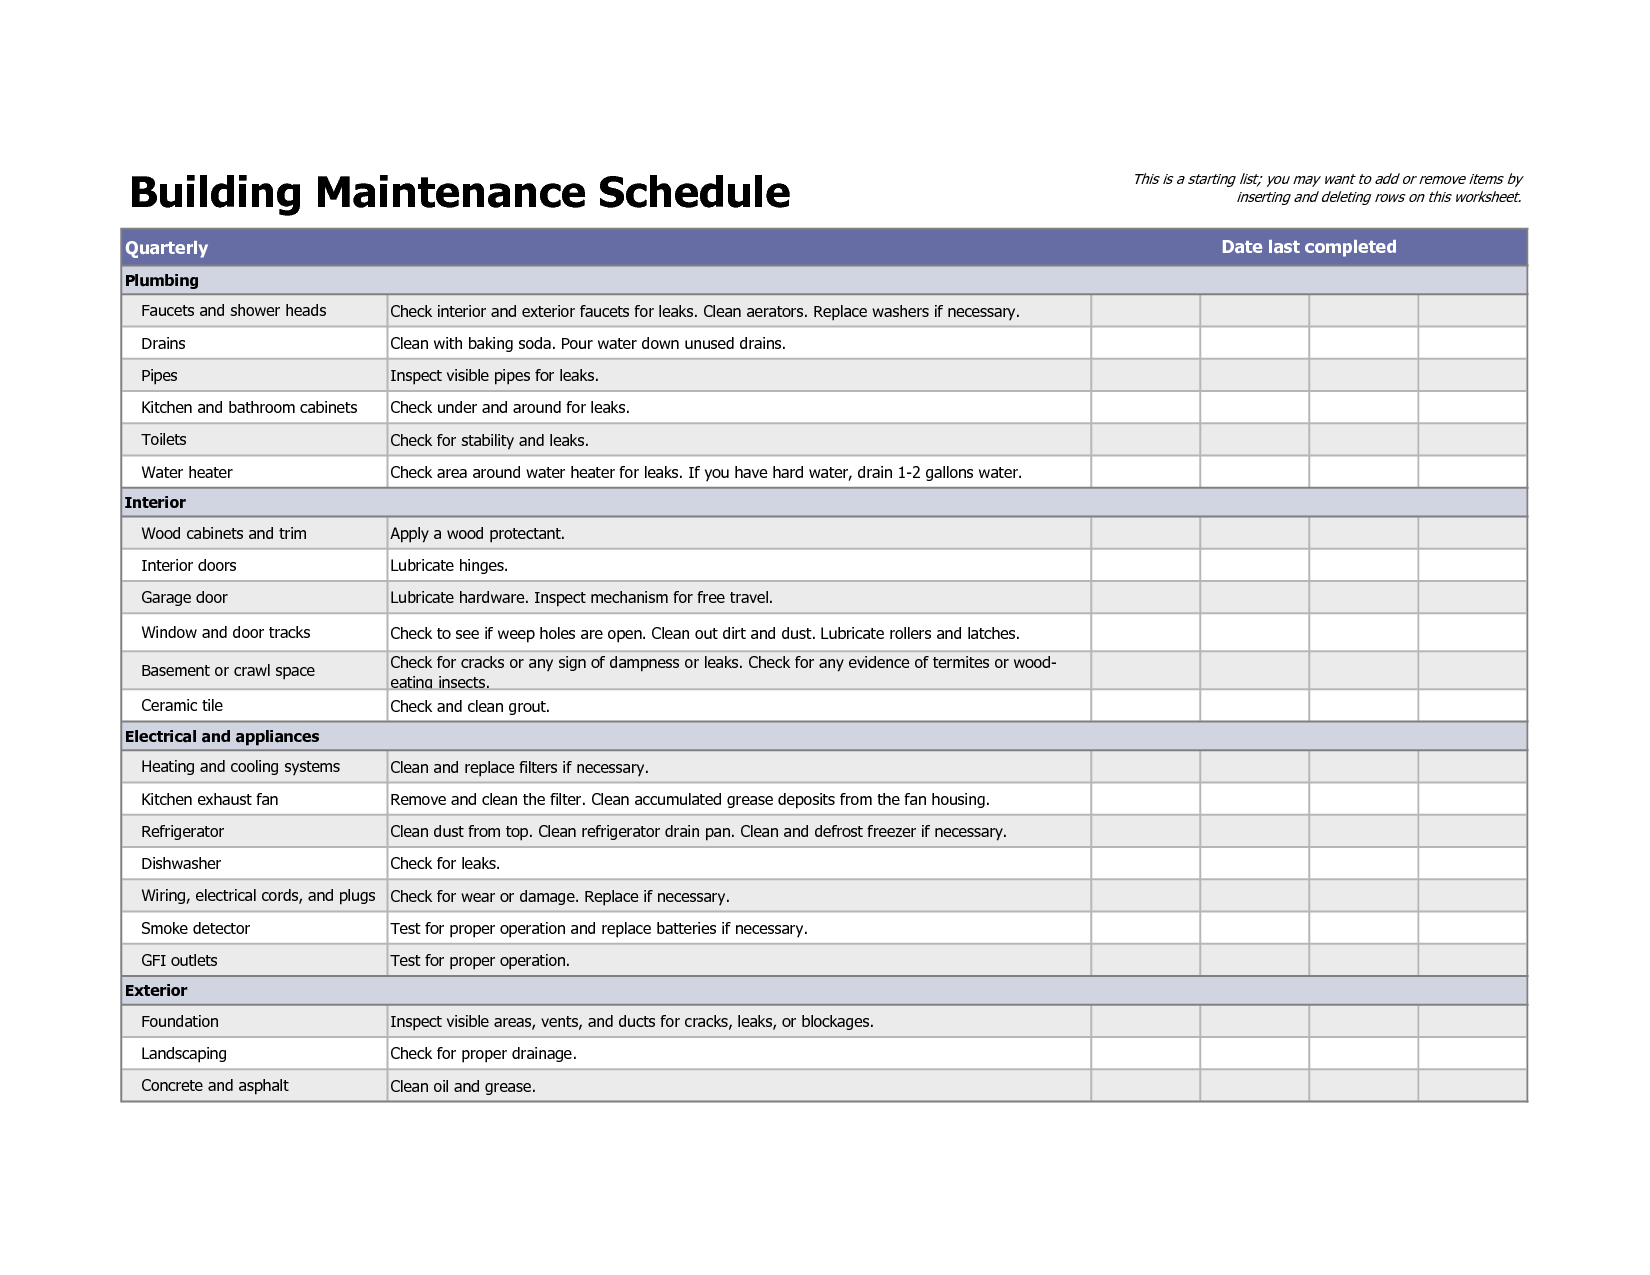 Building Maintenance Schedule Excel Template Building Maintenance Maintenance Checklist Preventive Maintenance